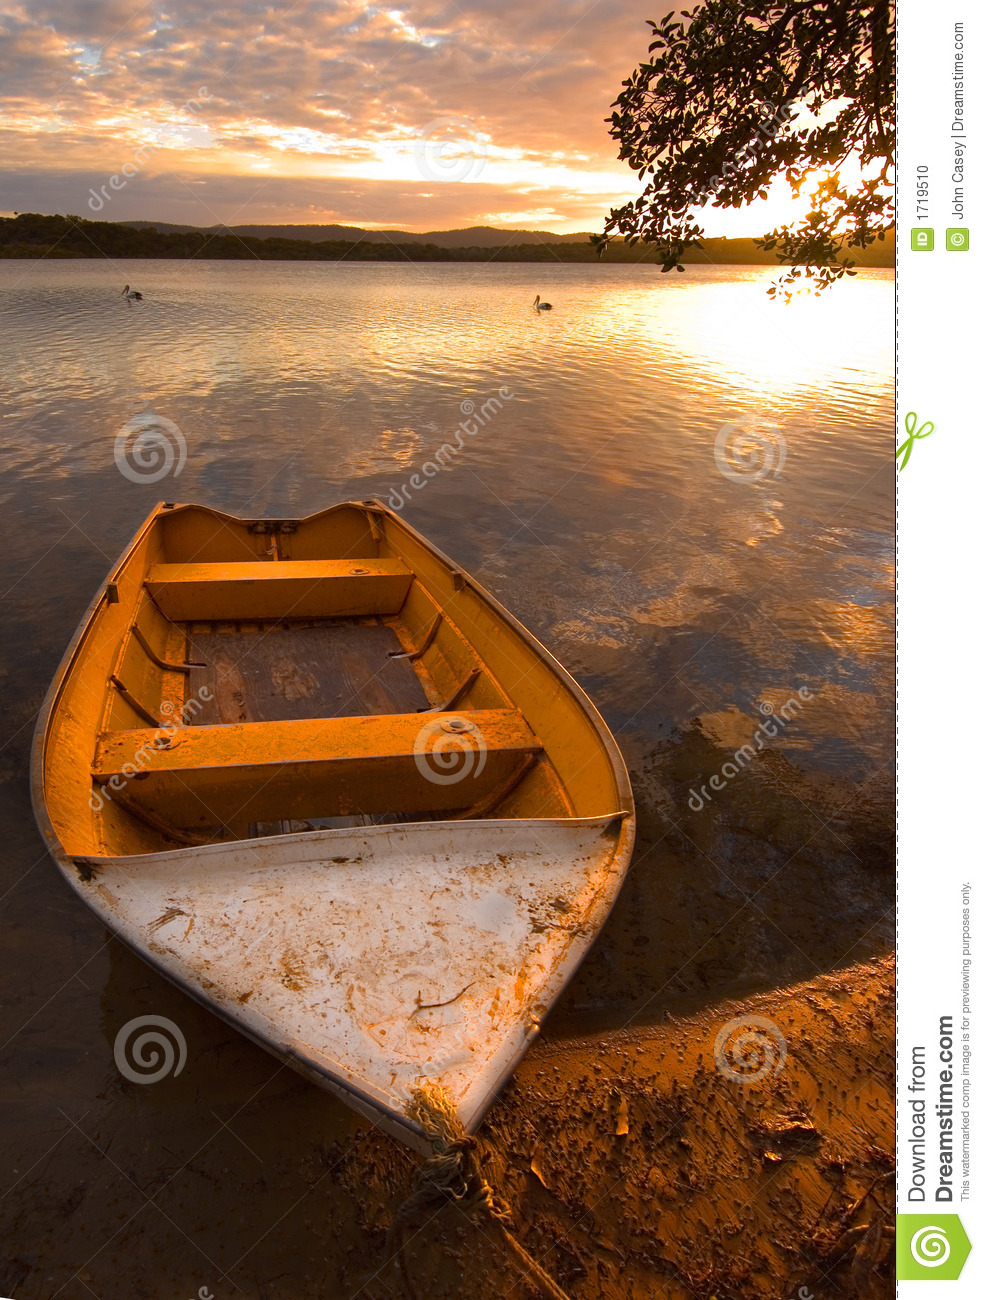 Row-boat and pelicans stock photo. Image of history, beach - 1719510